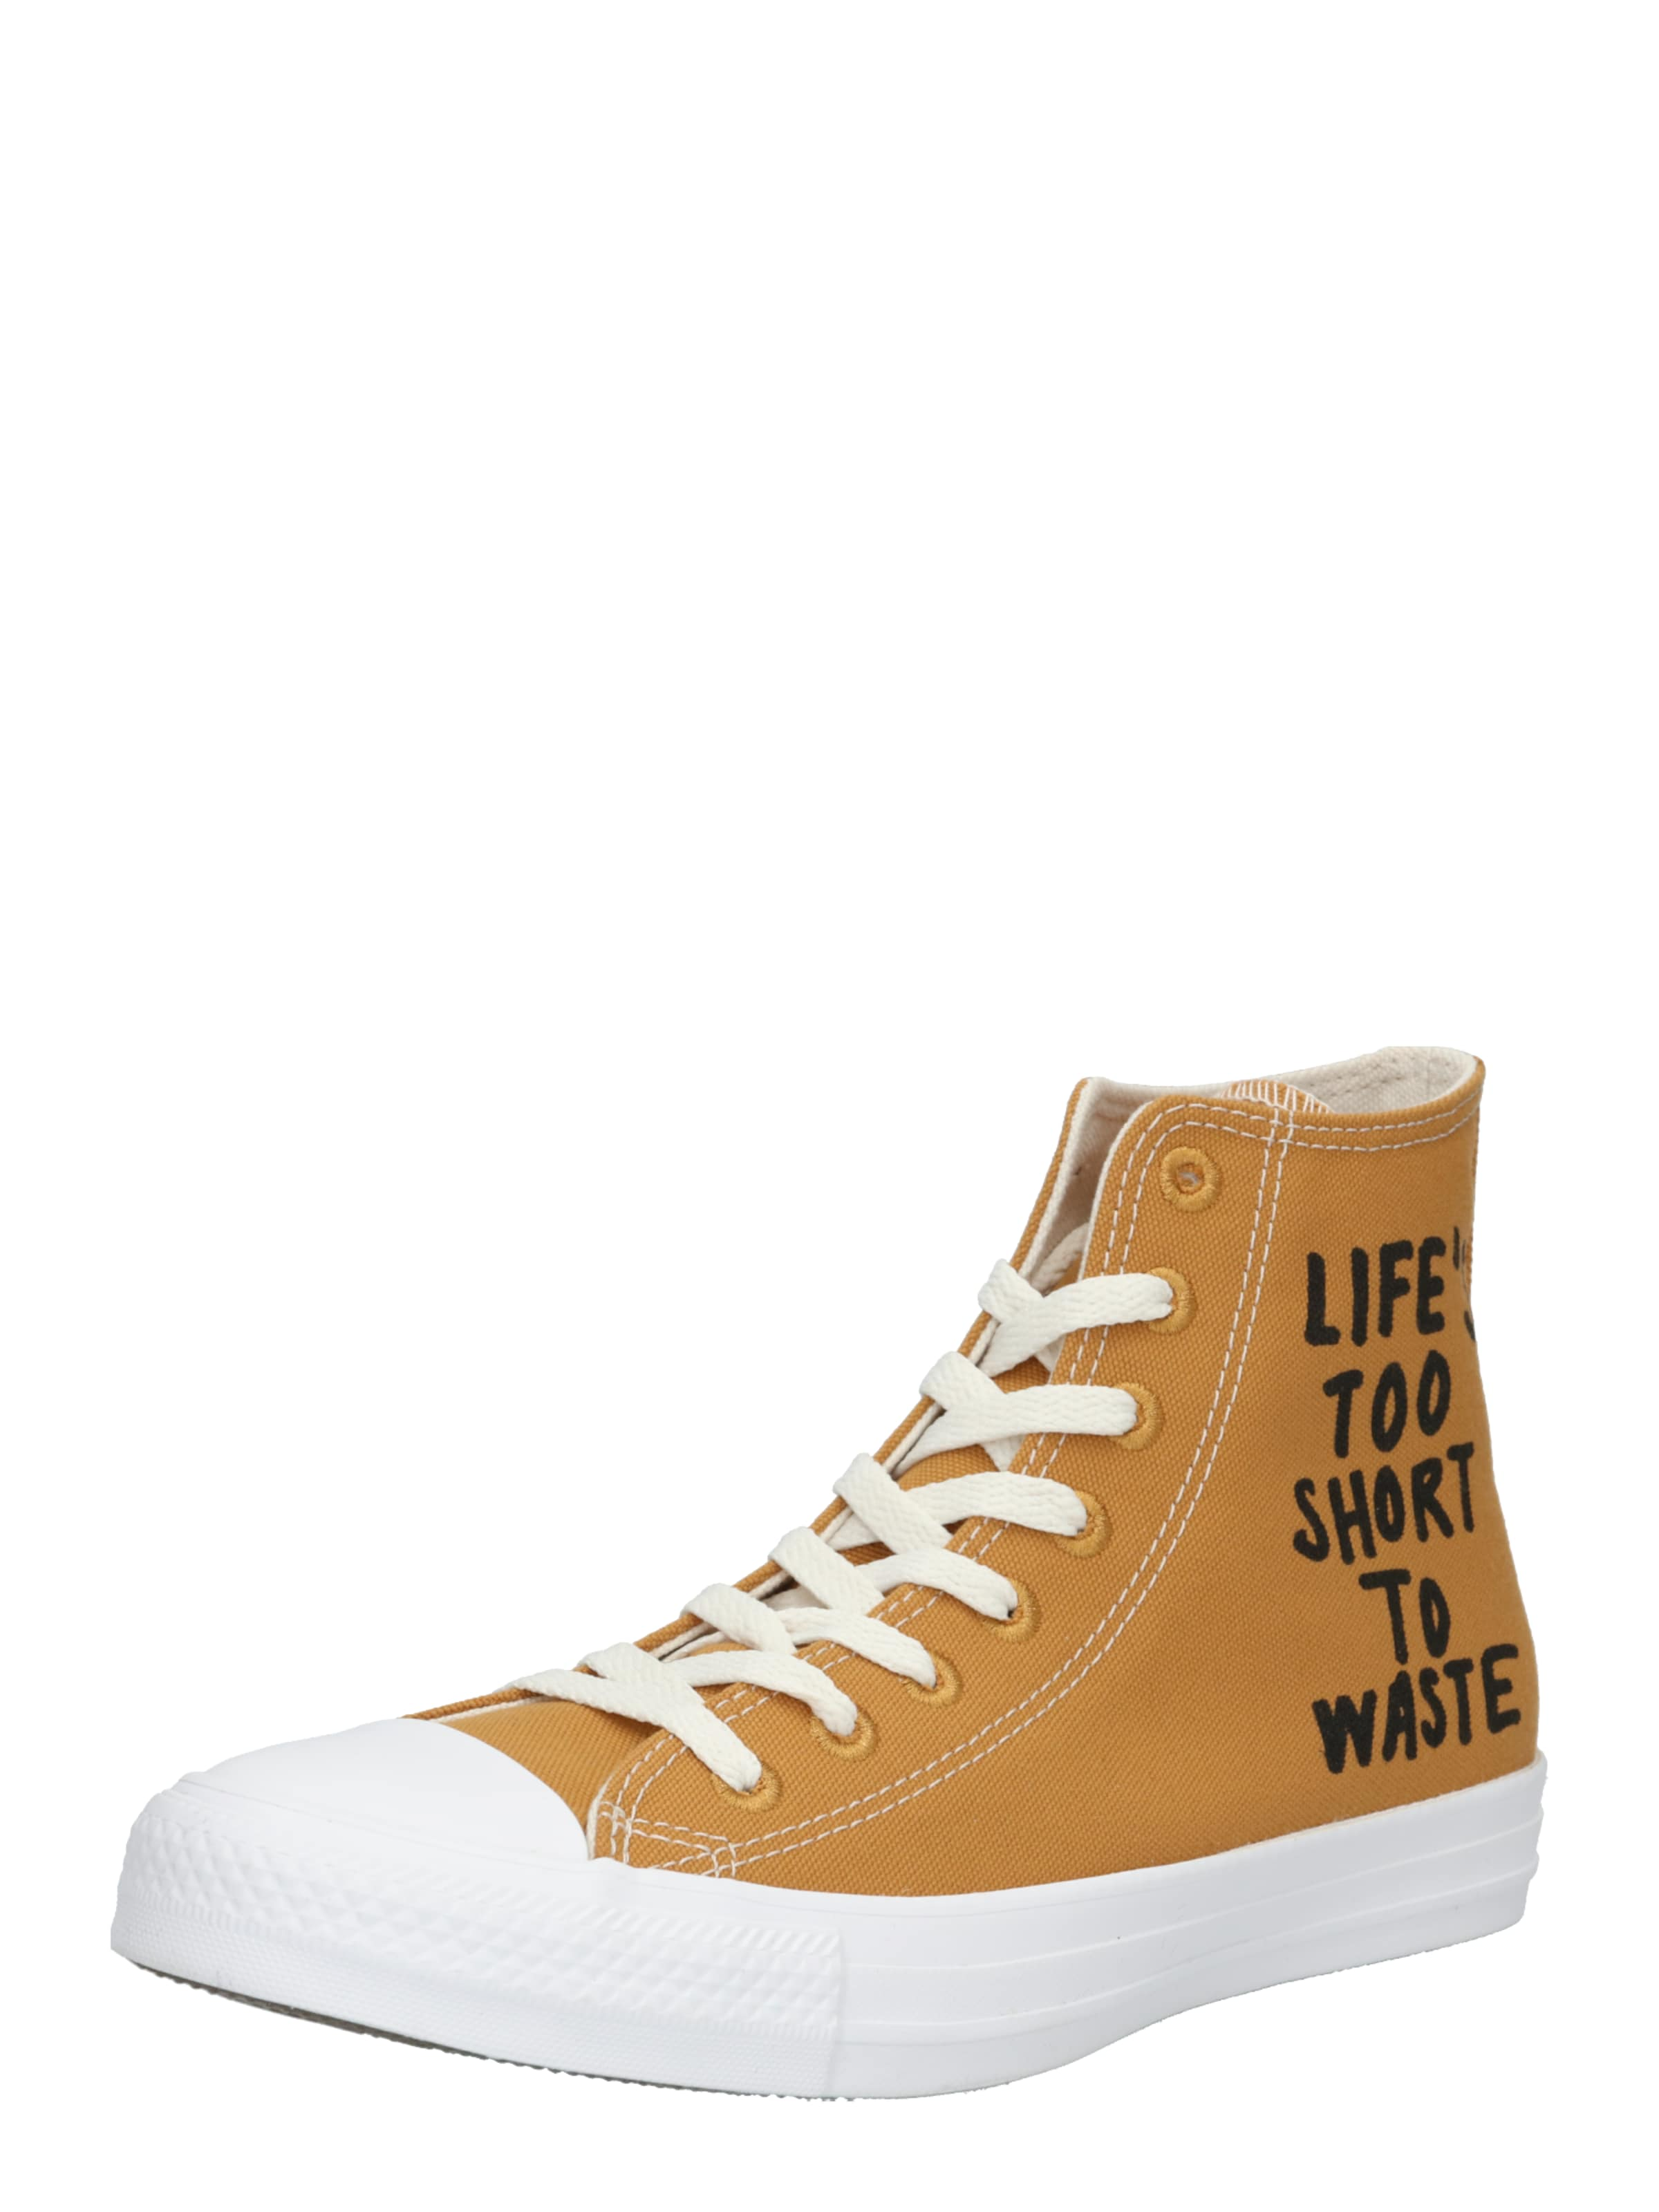 RenewHi' Converse Taylor In Creme 'chuck Sneaker Star All m0vNnO8w